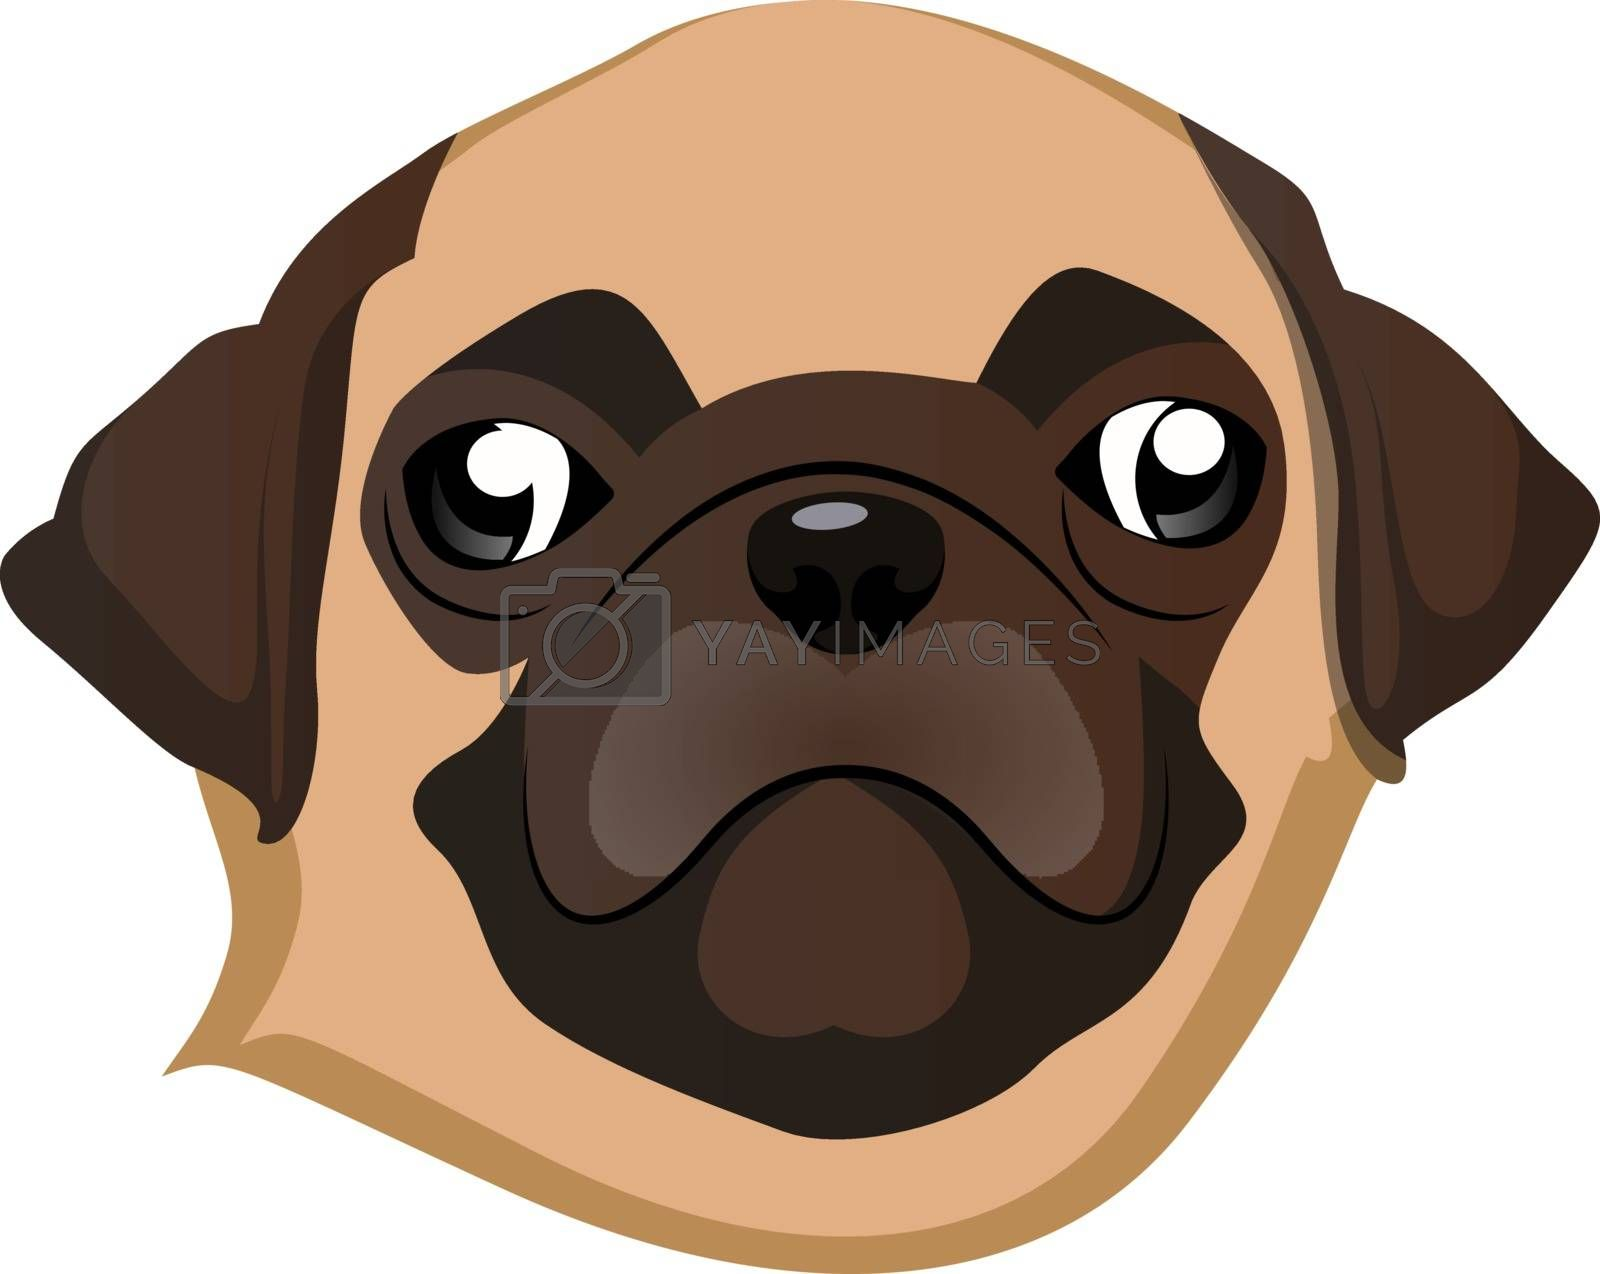 Royalty free image of Pug illustration vector on white background by Morphart